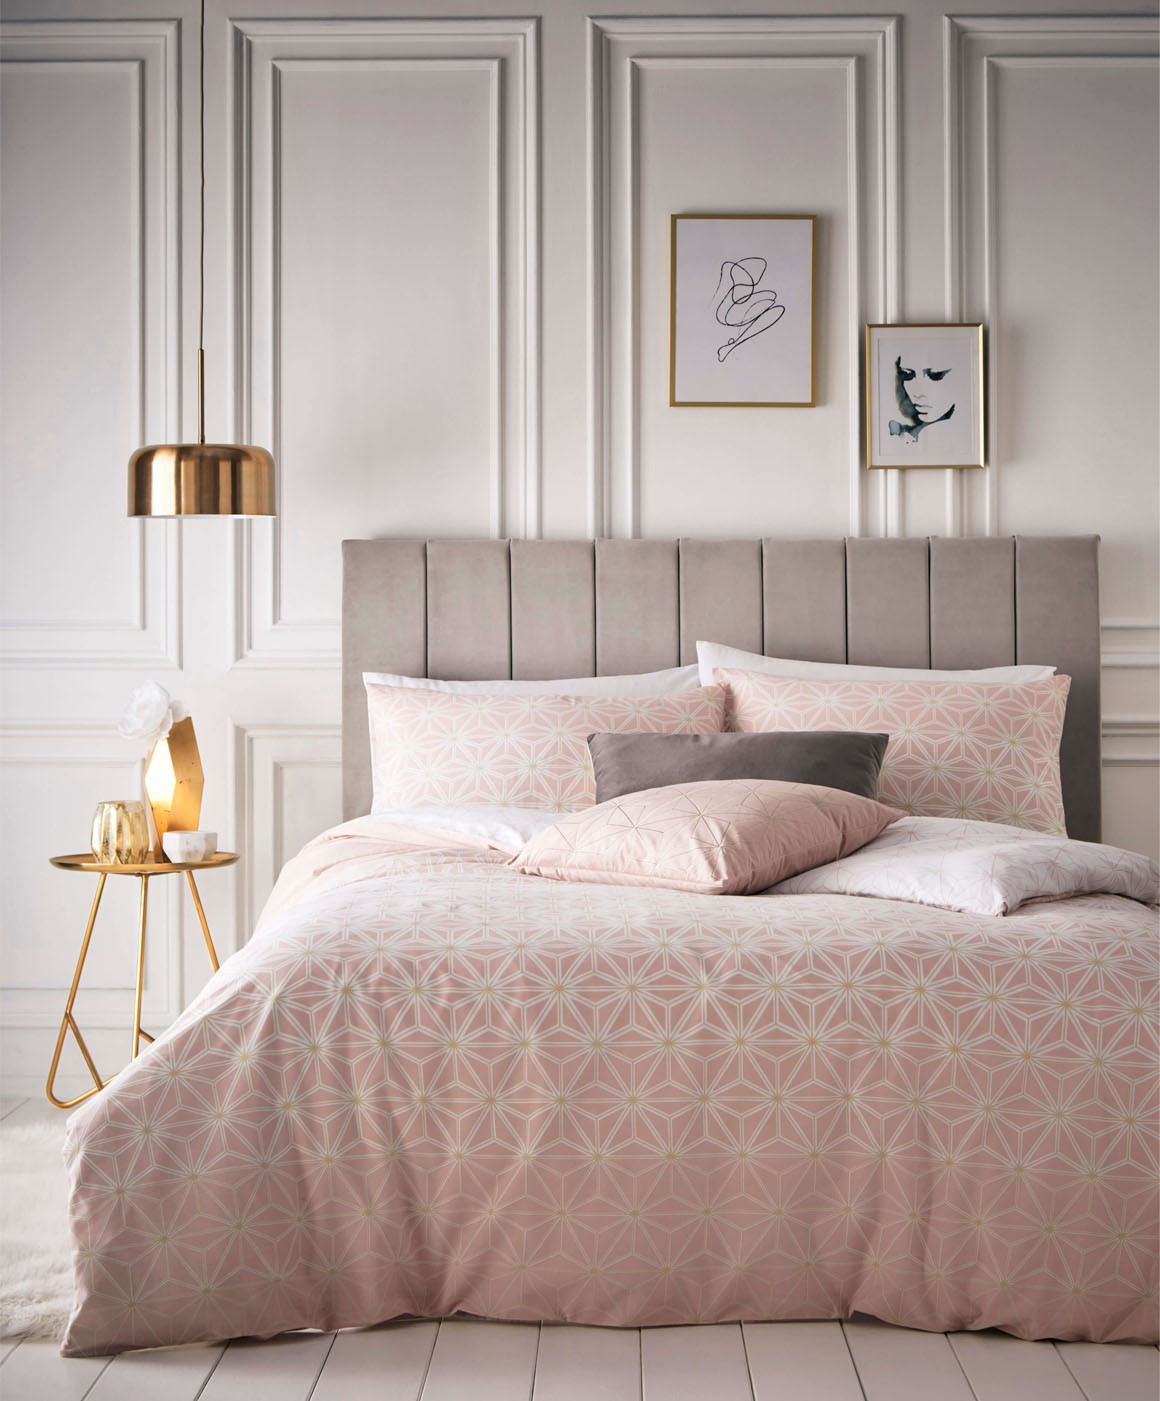 The Home Furnishings Company Tessellate Blush/Gold Duvet Cover and Matching Pillow Cases   [copy]